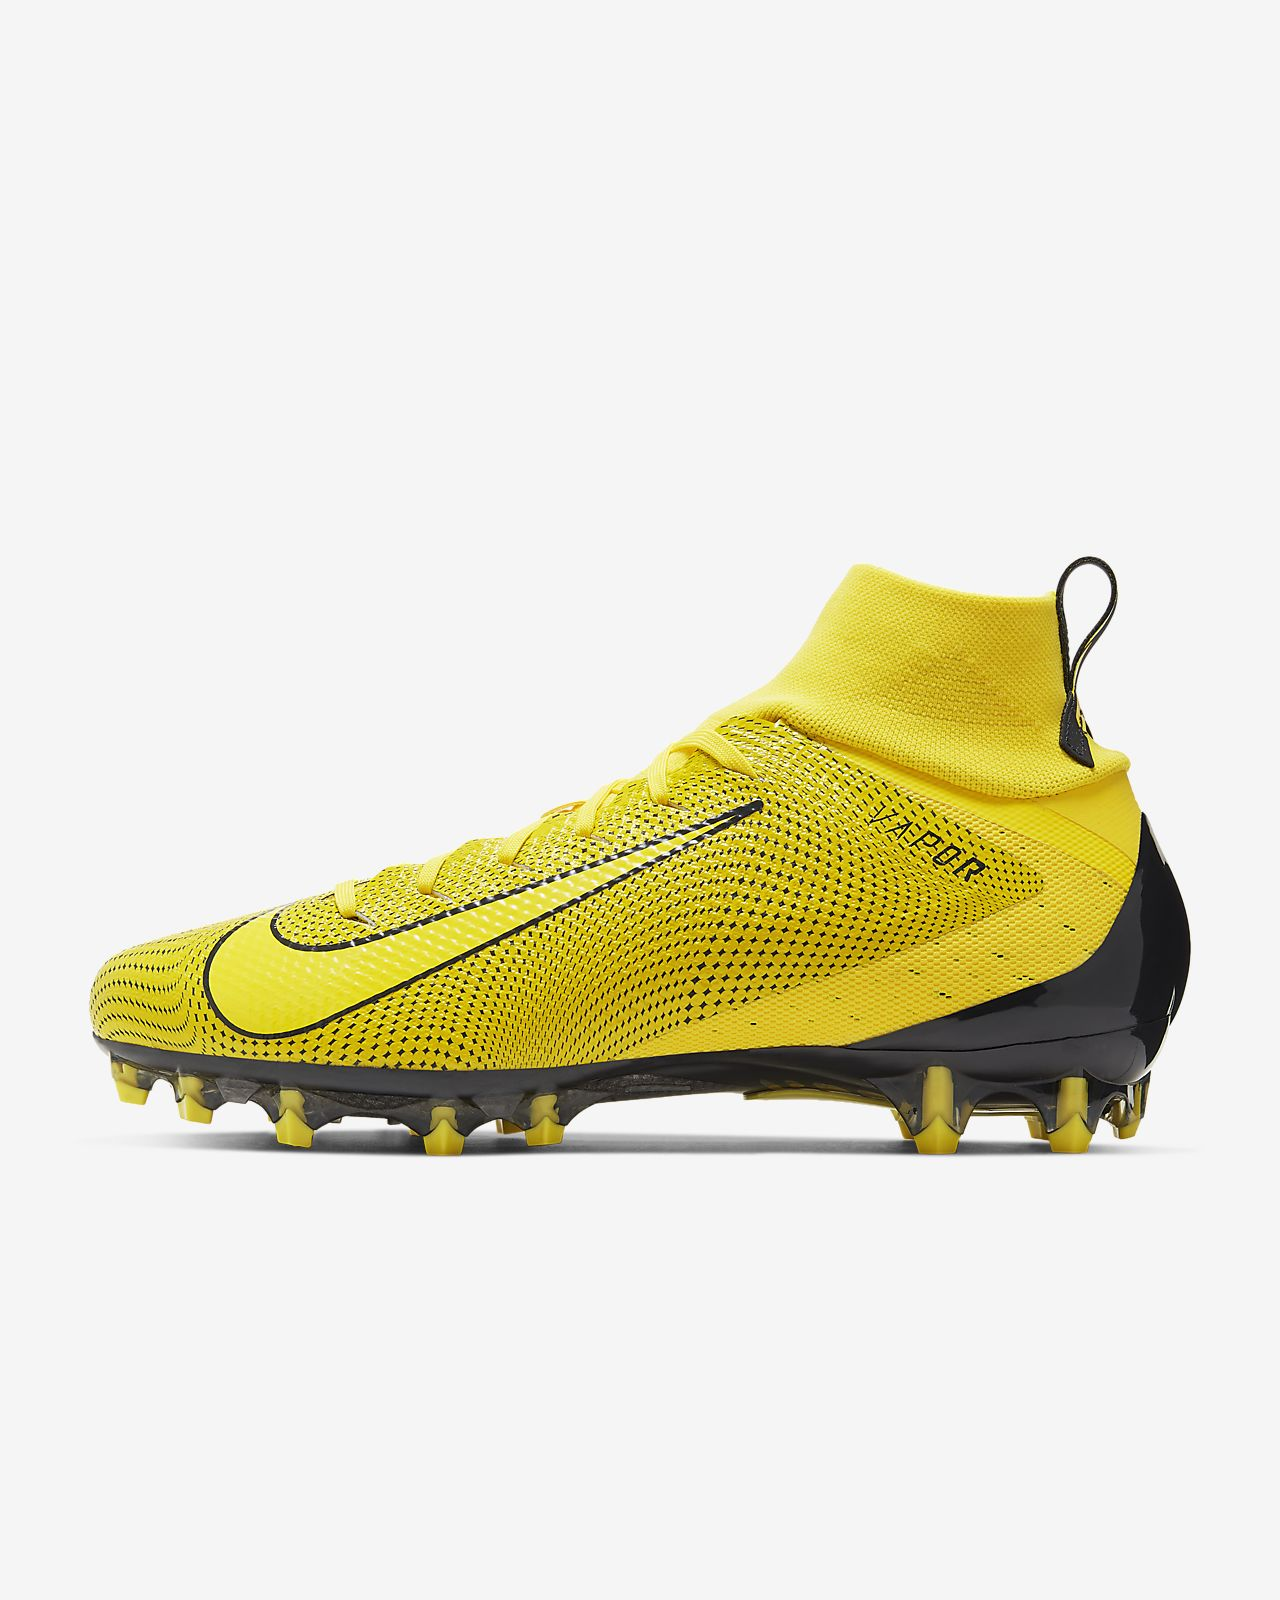 12b09a5a6 Nike Vapor Untouchable 3 Pro Football Cleat. Nike.com